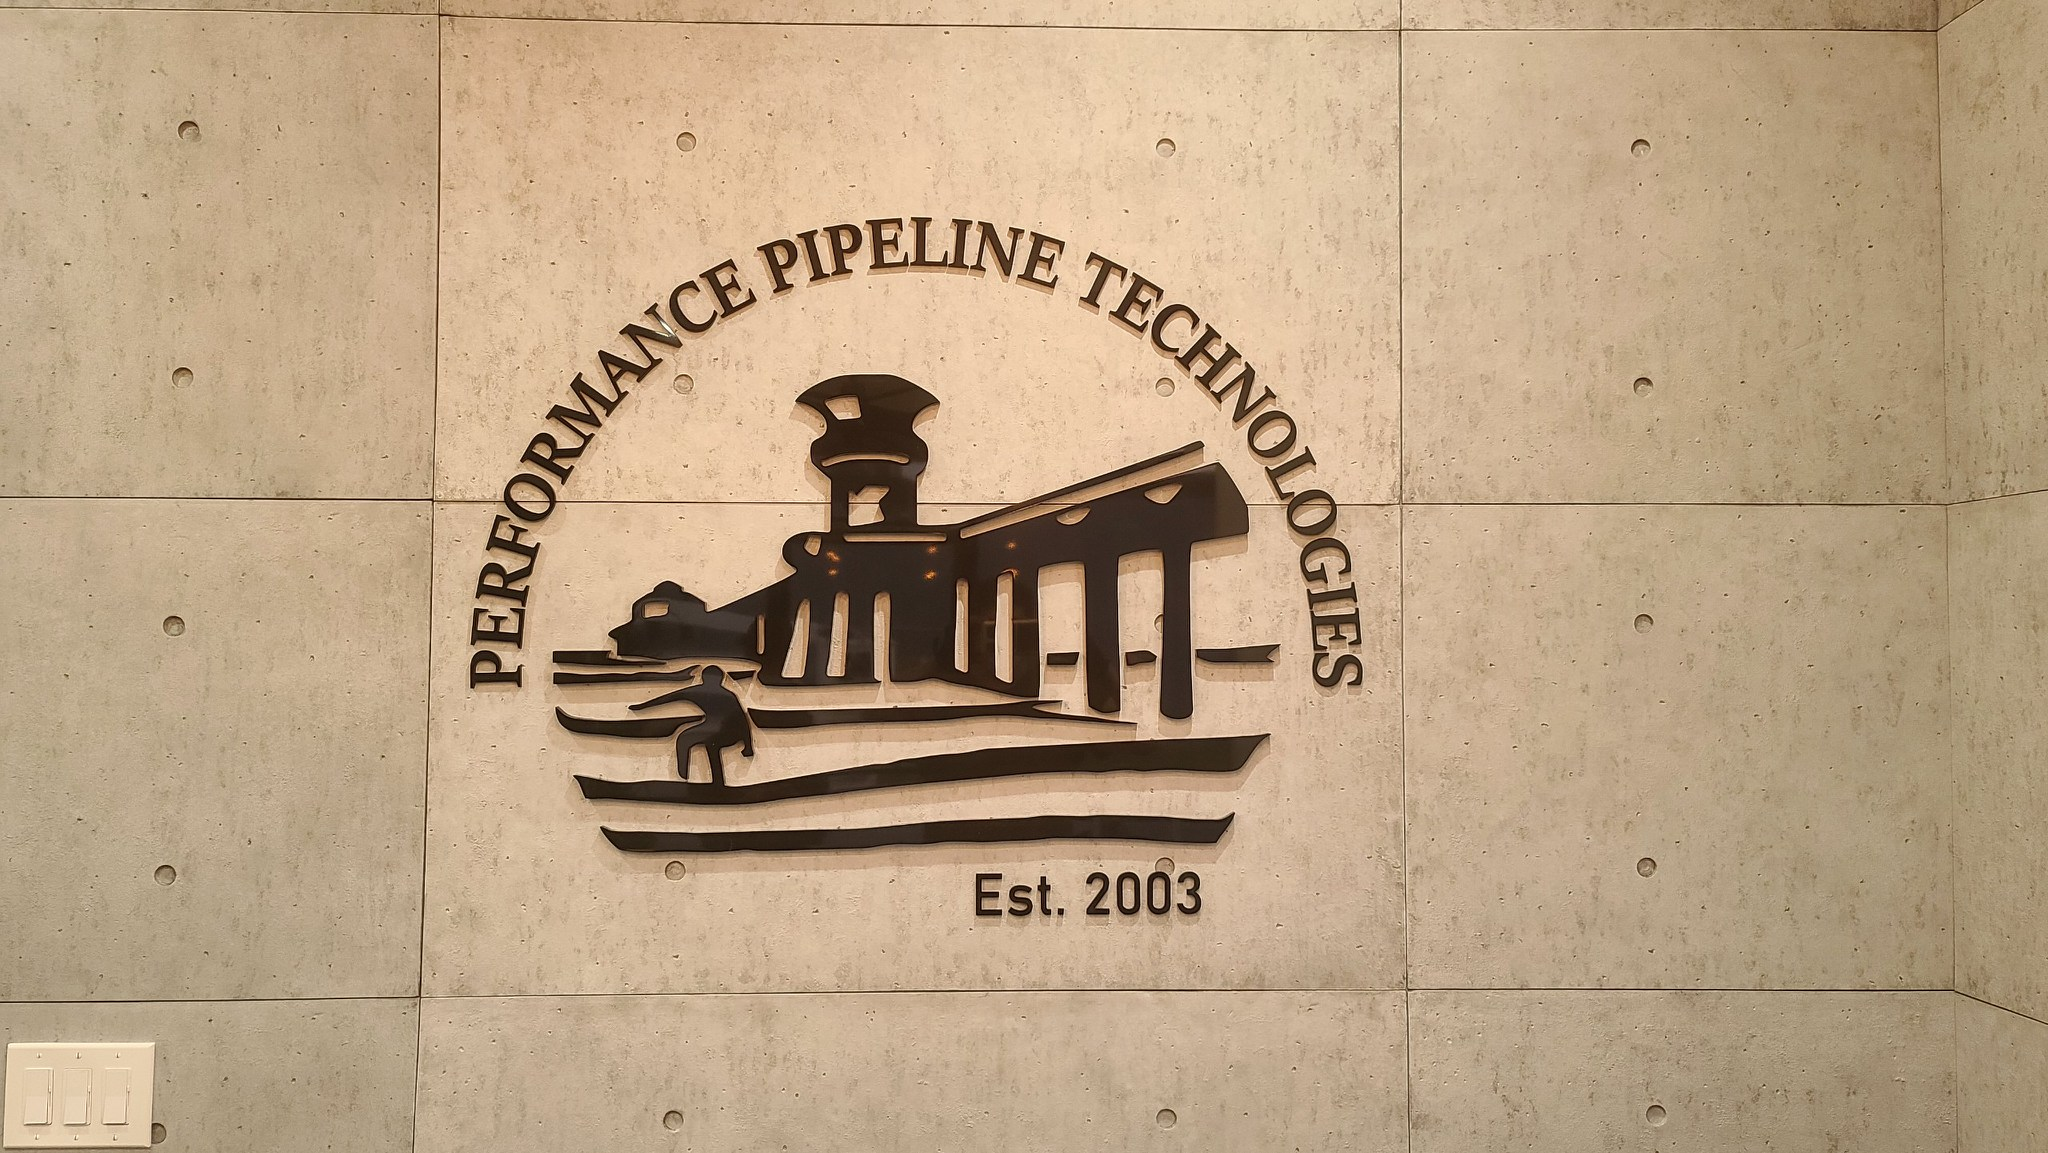 Now for the interior signs for Performance Pipeline: this office lobby sign enhances the workspace of their Huntington Beach establishment.